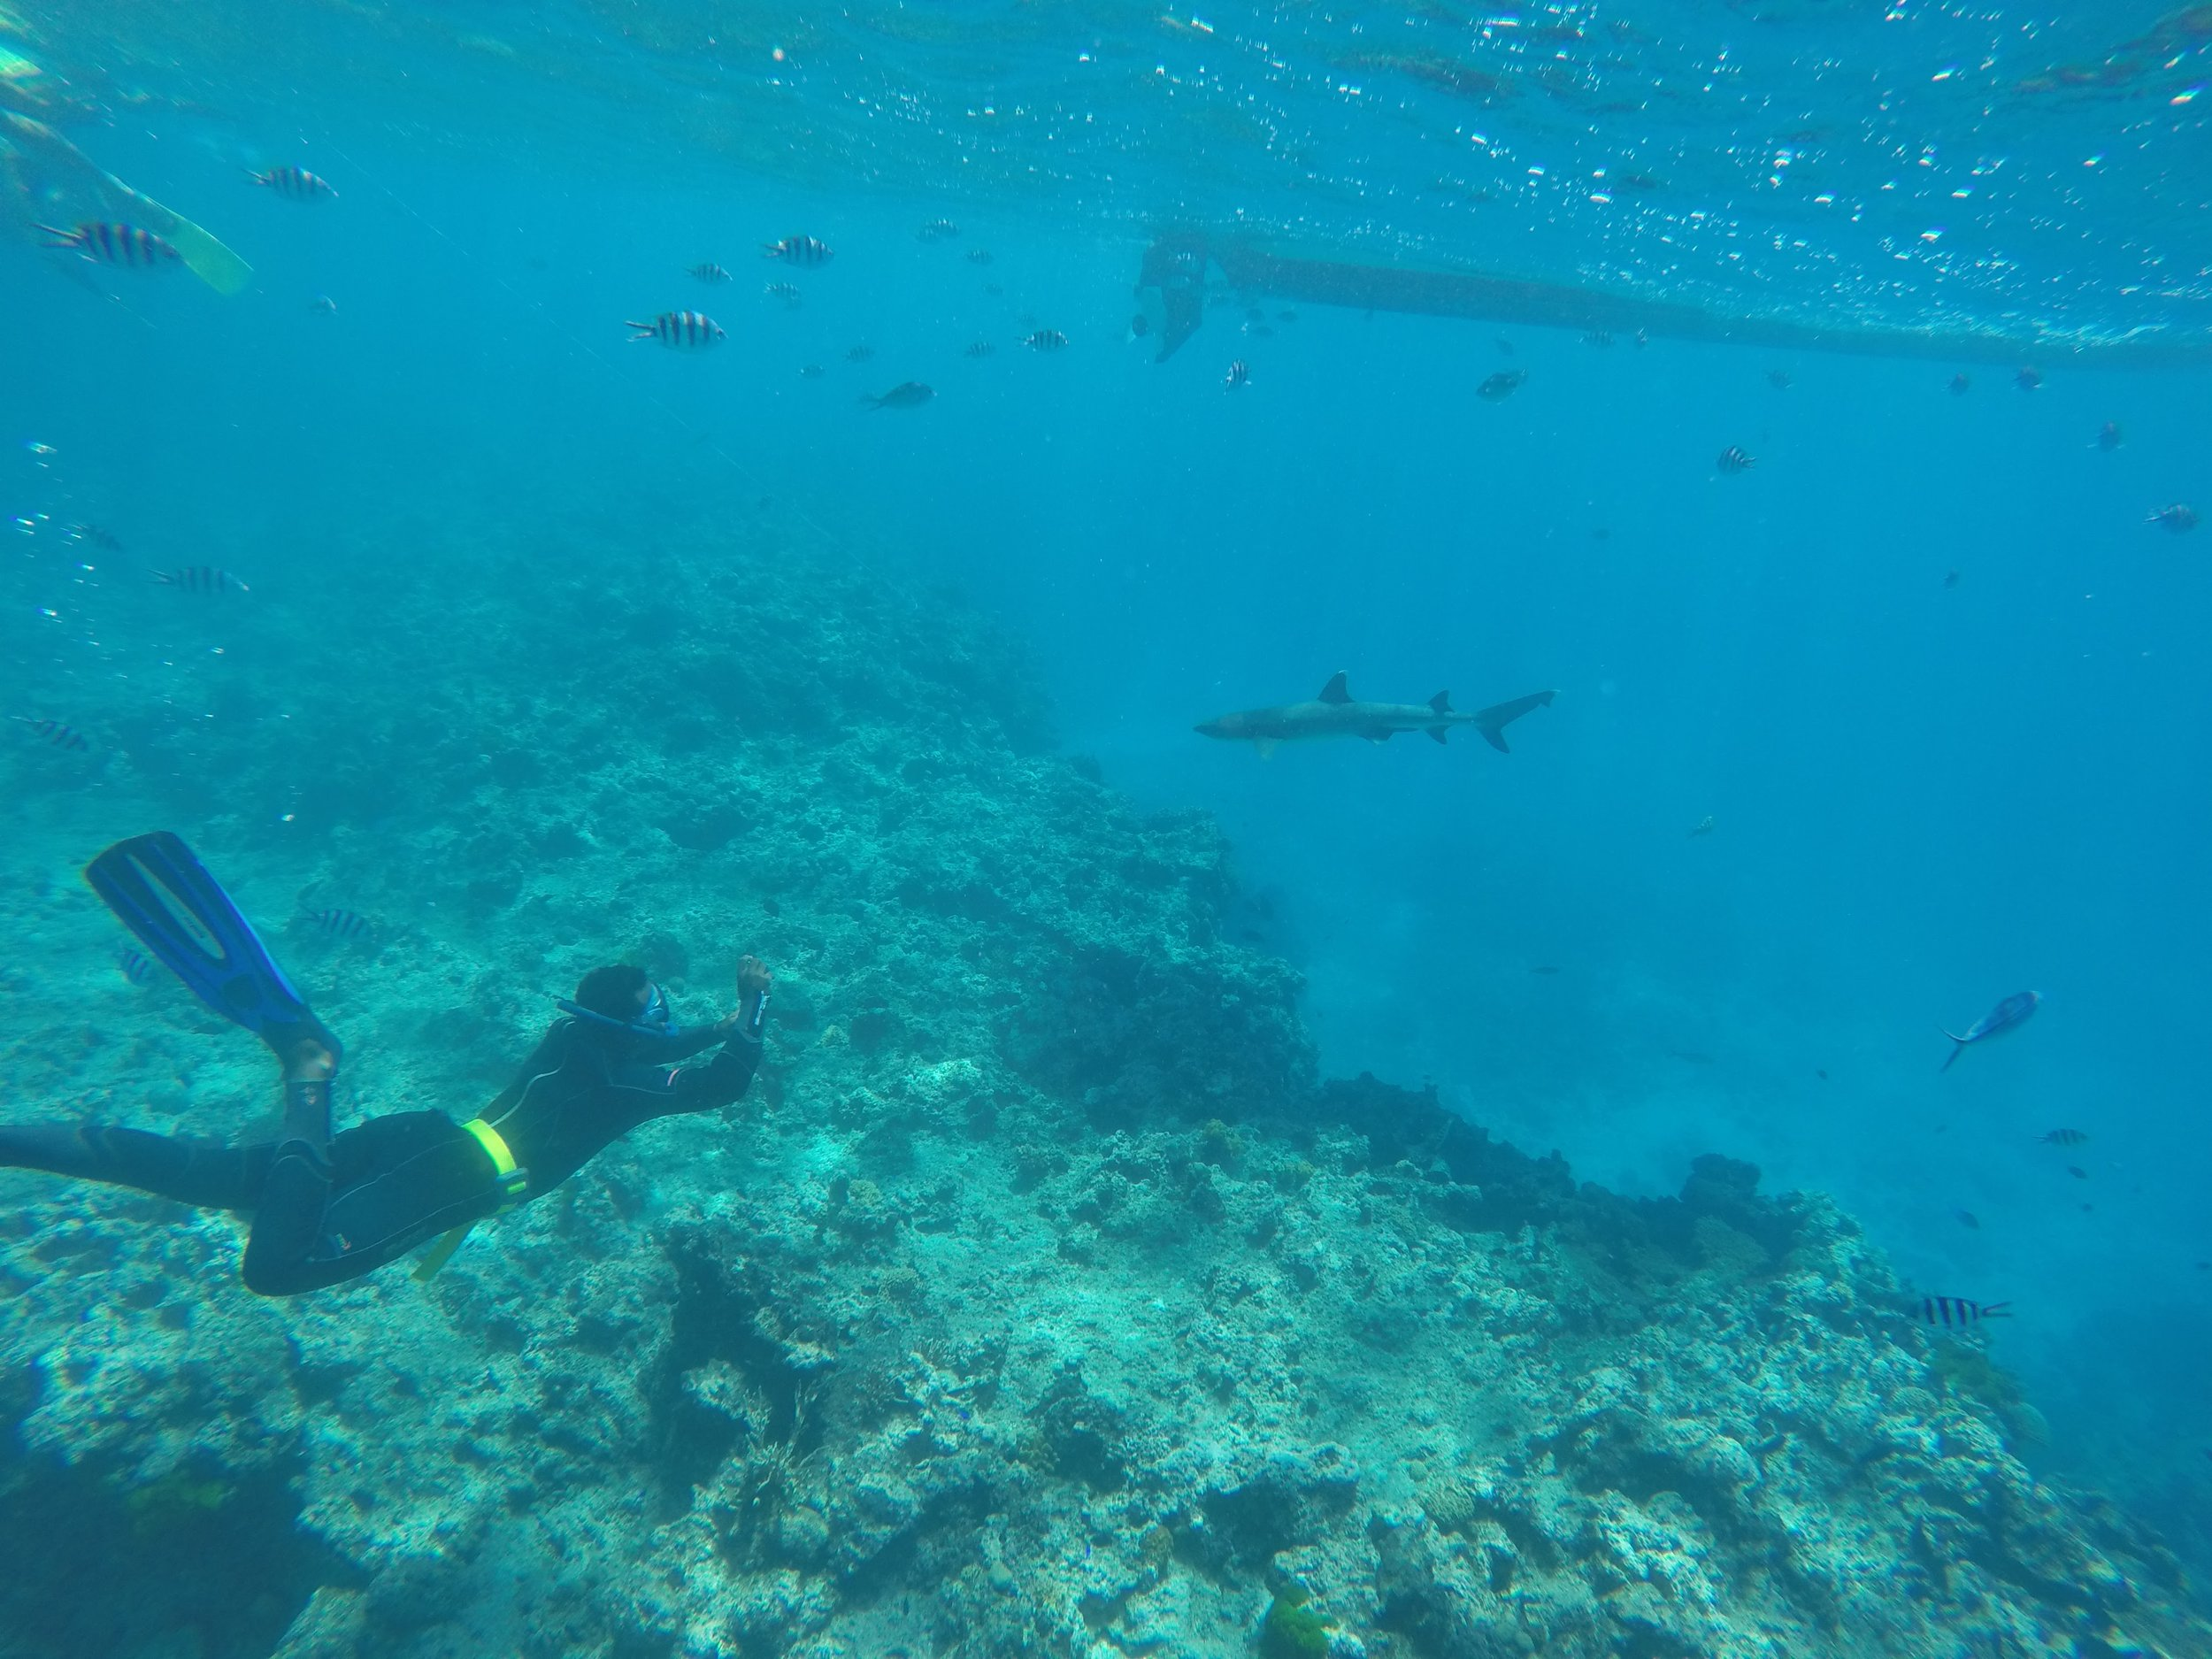 A member of the Kuata Dive Team takes a picture of a reef shark below our boat.